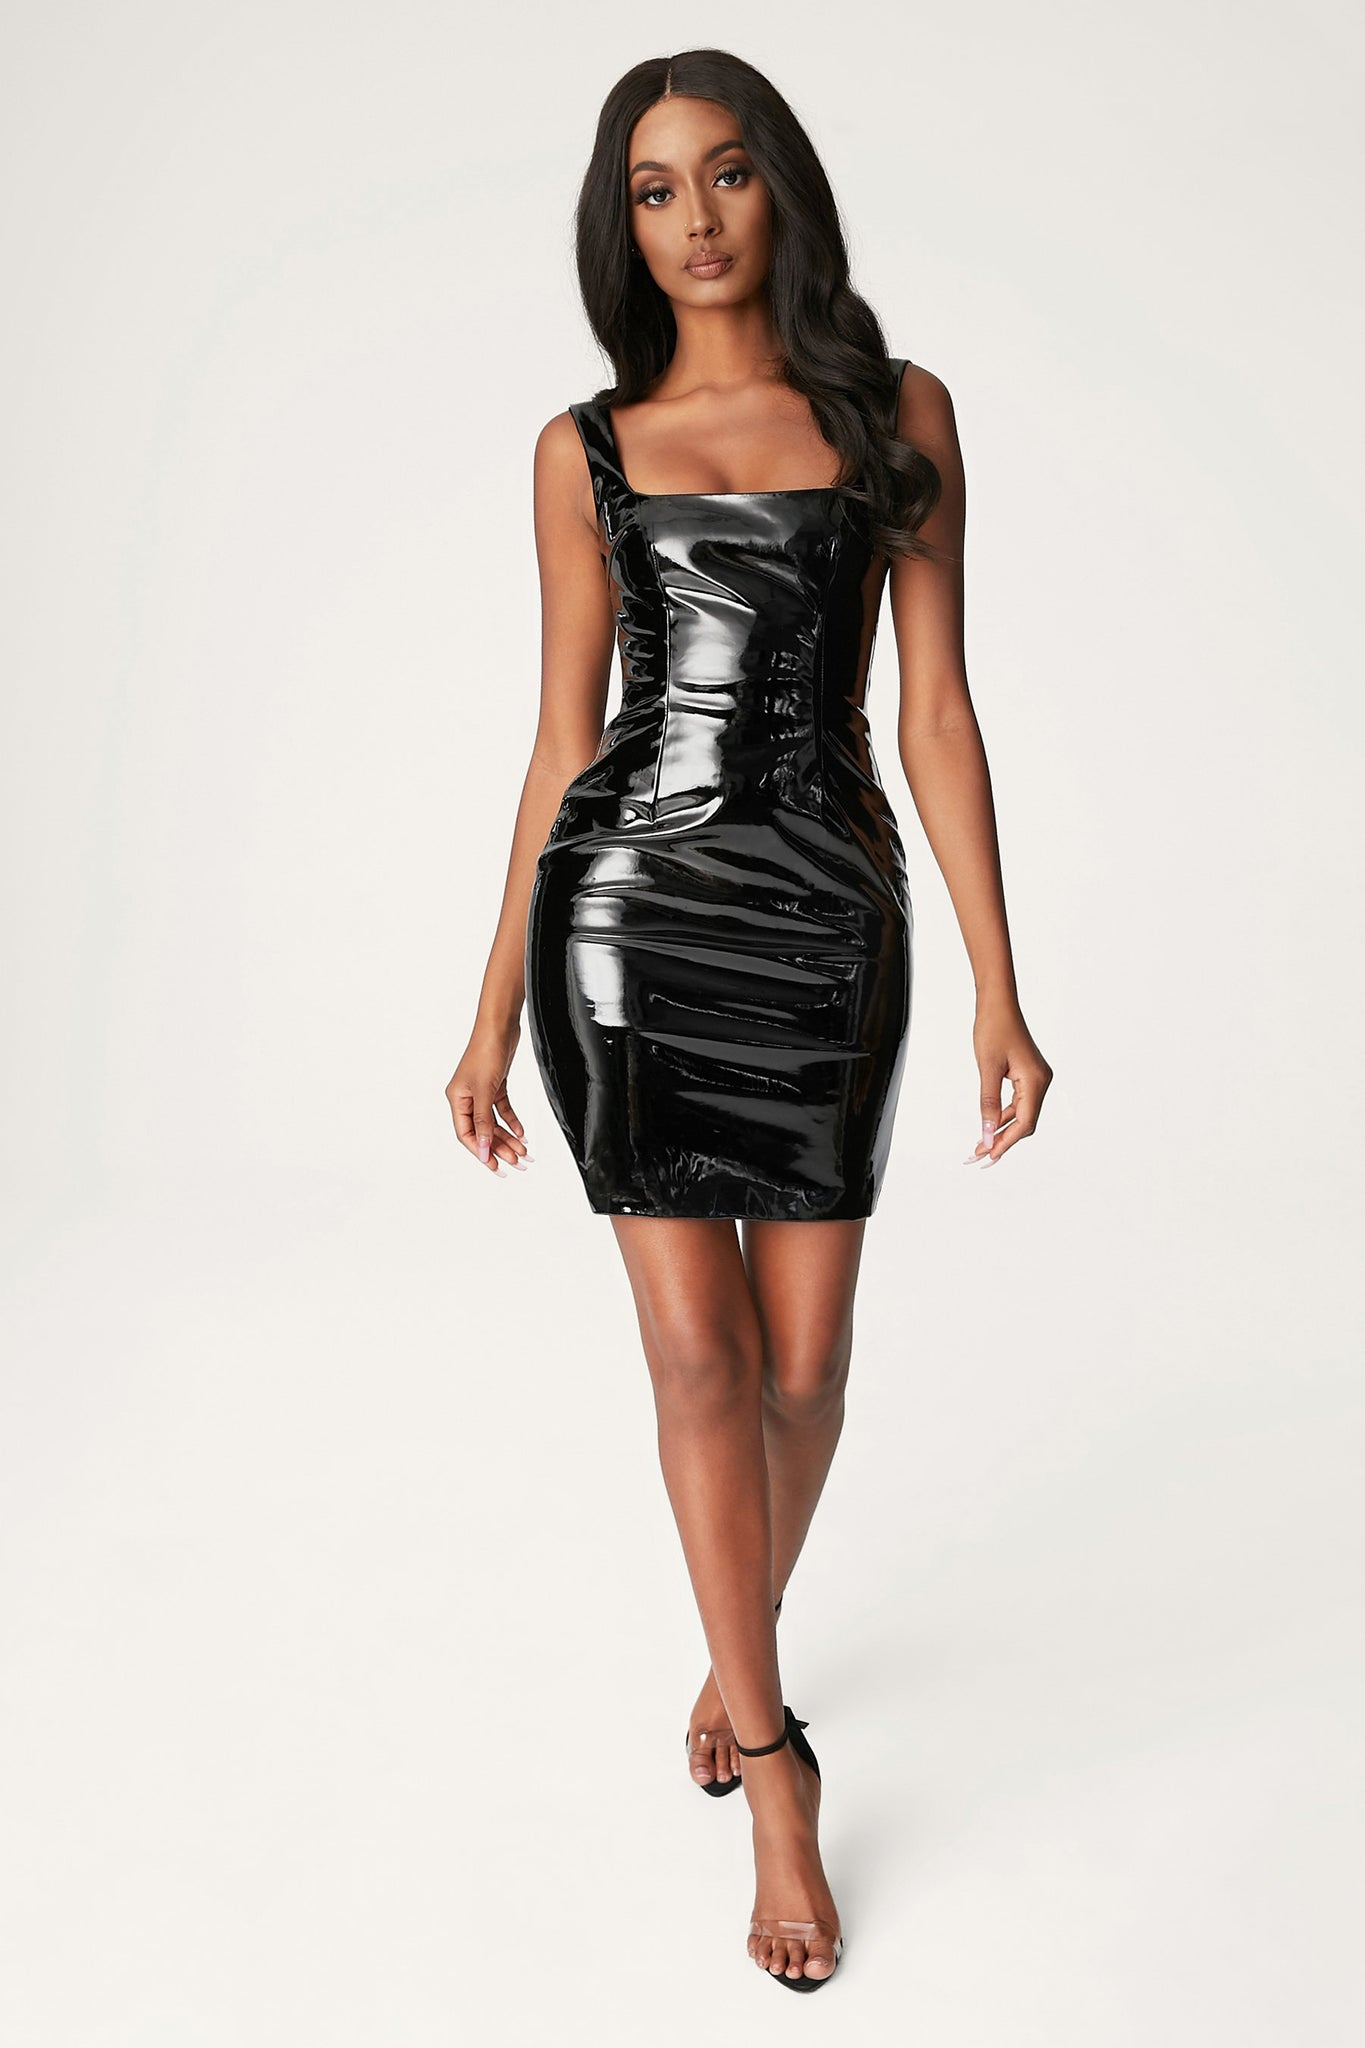 Romy Square Neck Latex Mini Dress - Black - MESHKI